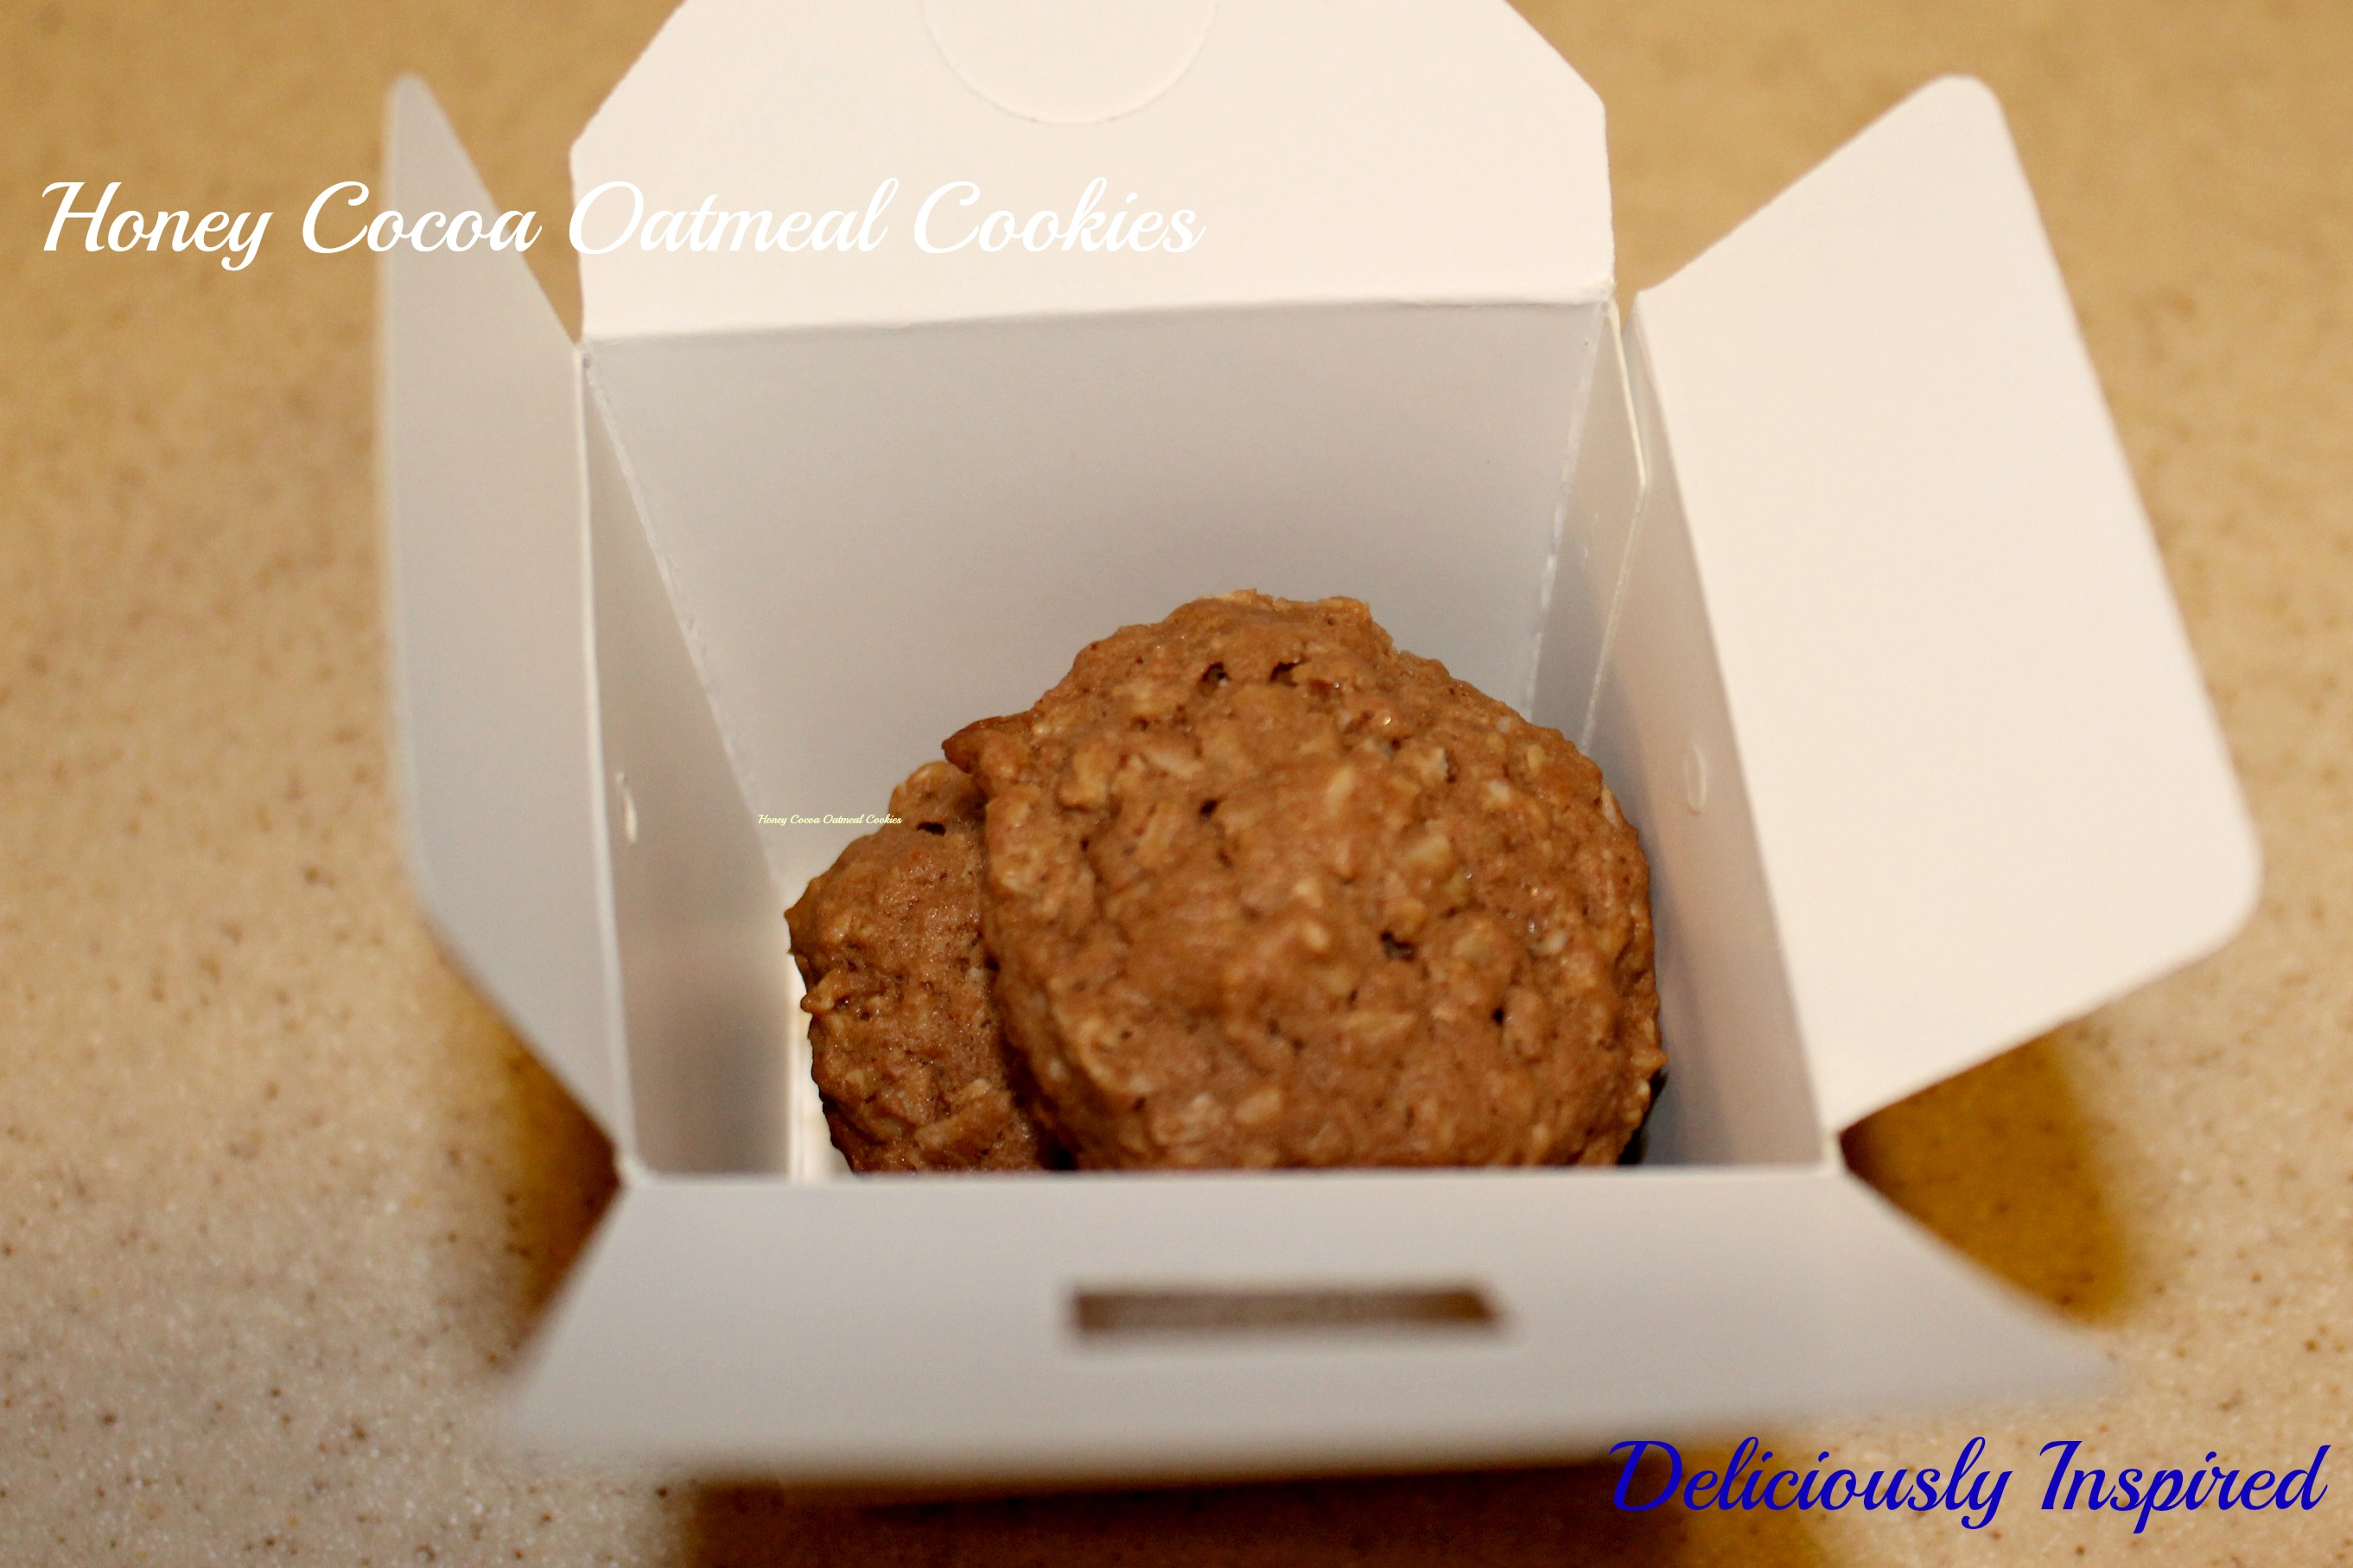 Honey Cocoa Oatmeal Cookies - Gift